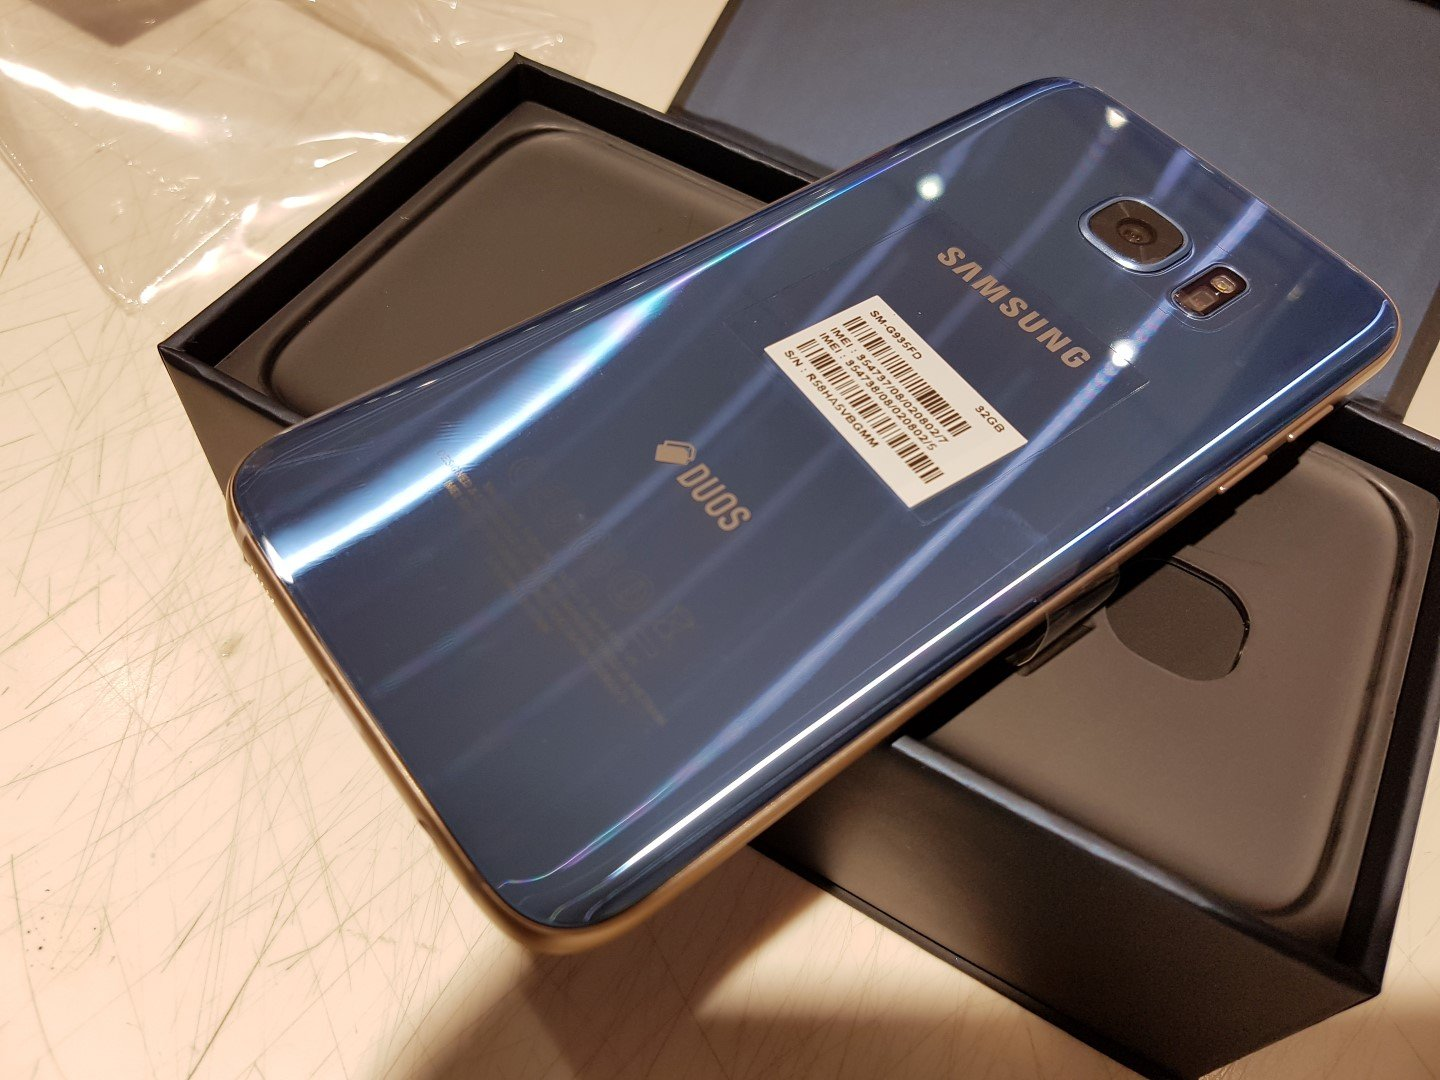 check out these pictures of the blue coral galaxy s7 edge unboxing sammobile